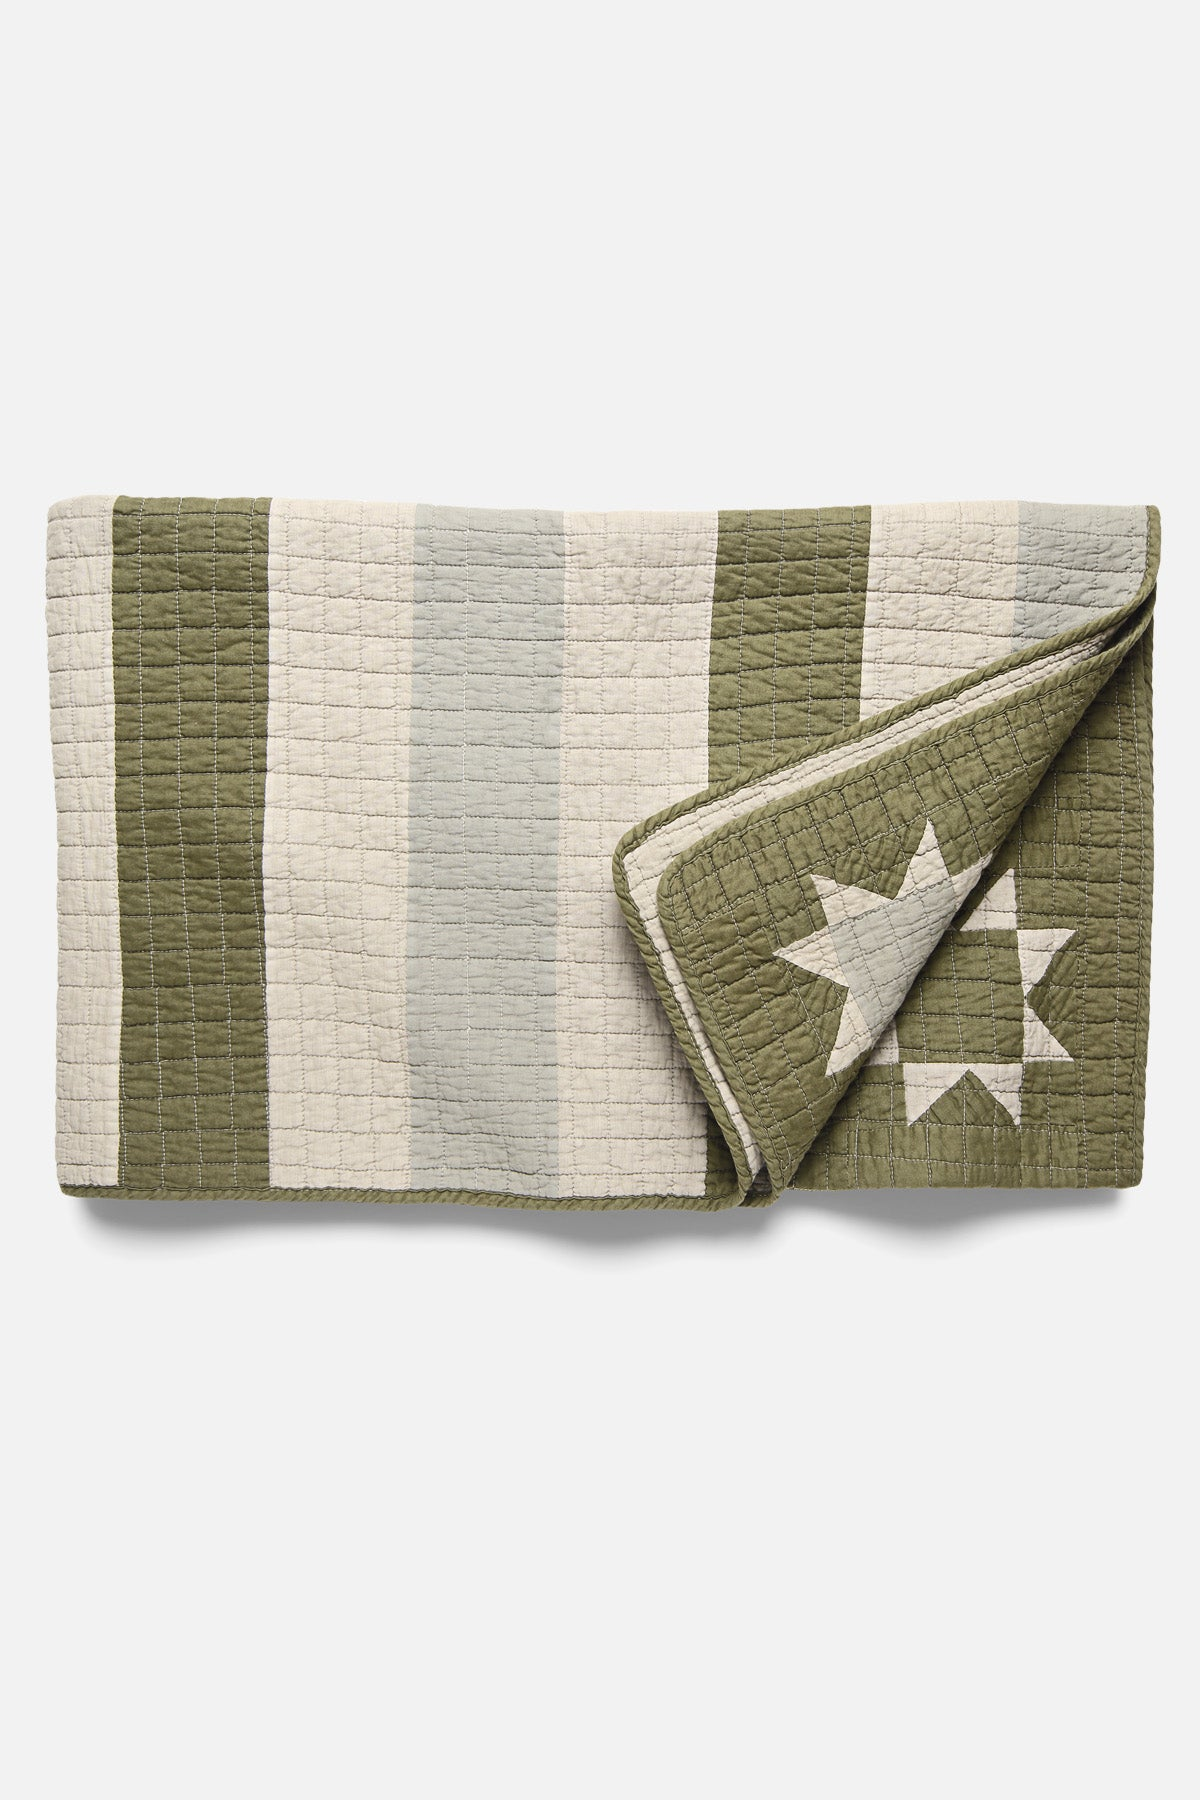 BasShu Patchwork Quilt in Khaki - Fortune Goods